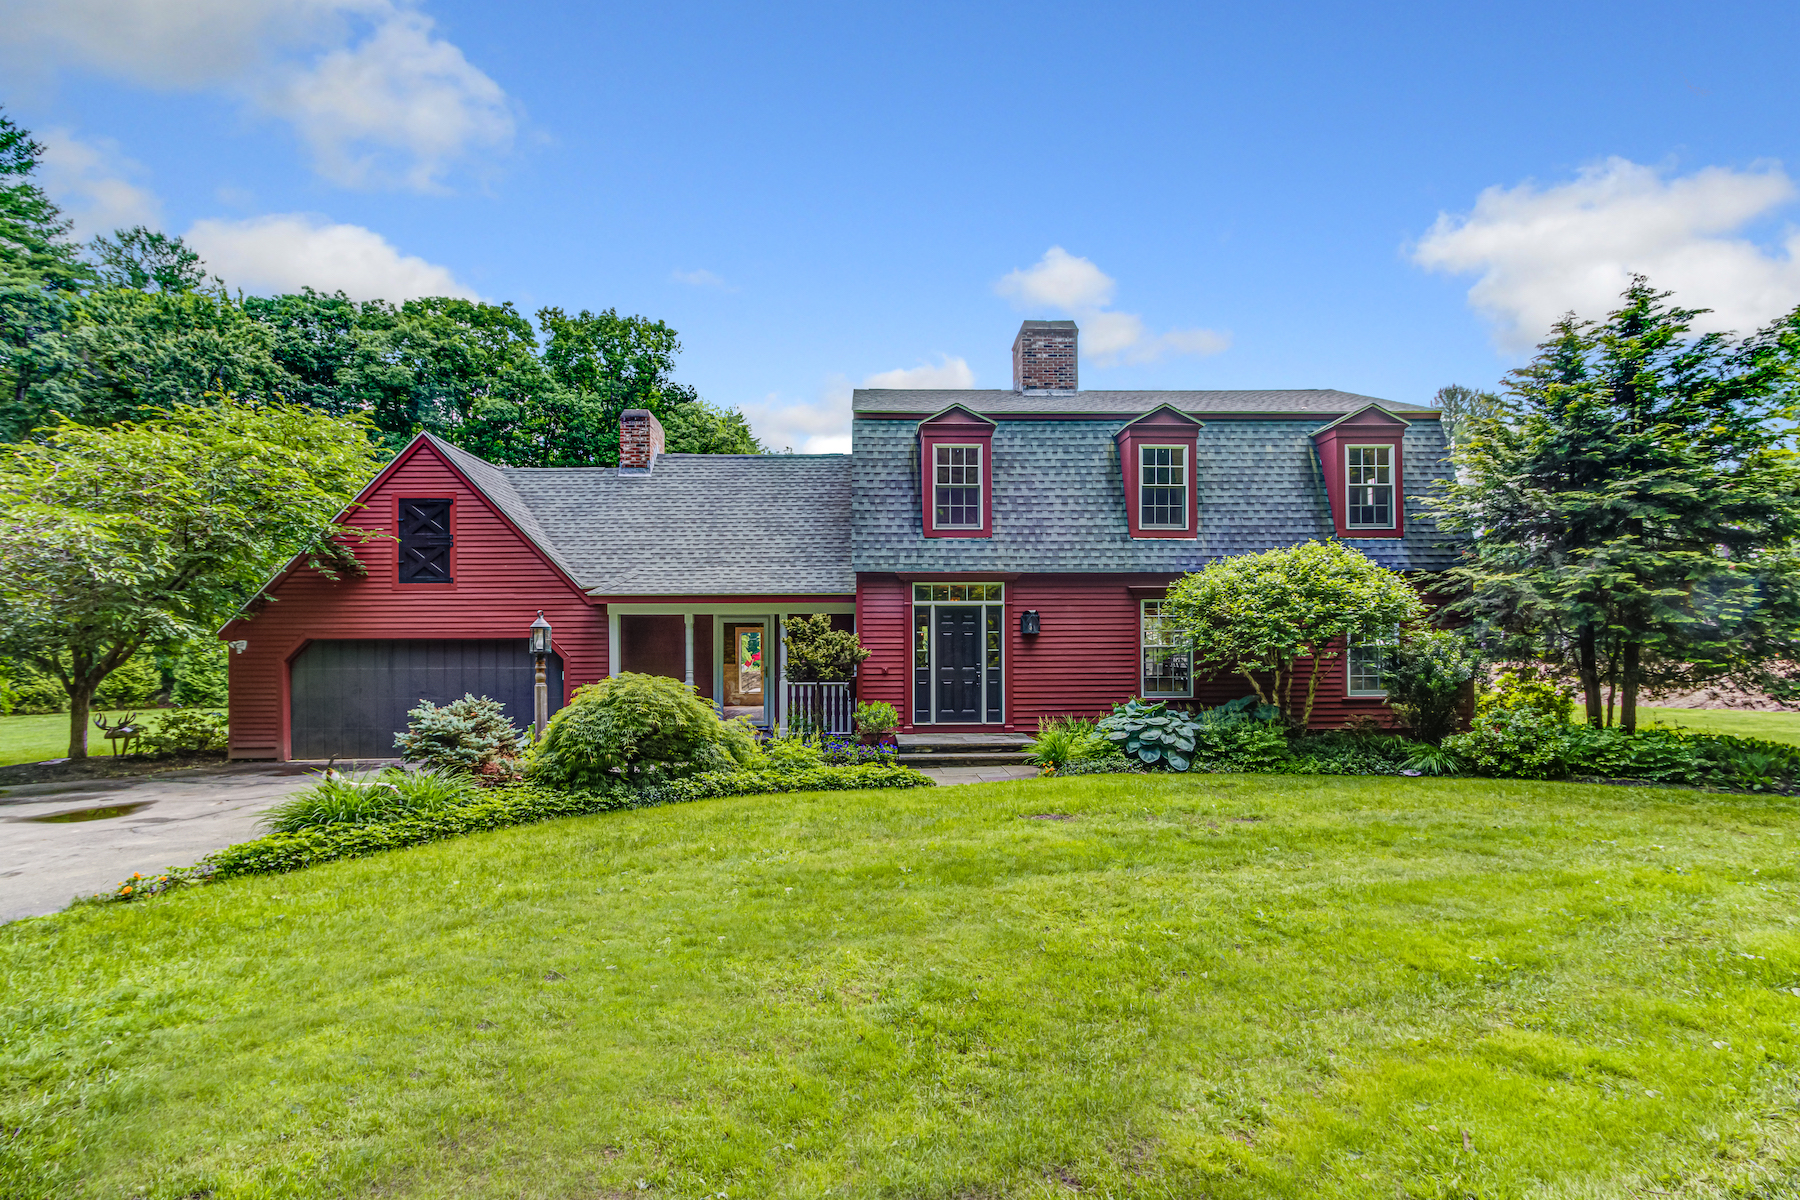 Single Family Homes for Active at Lovely Gambrel Colonial 172-A Howard Street Northborough, Massachusetts 01532 United States